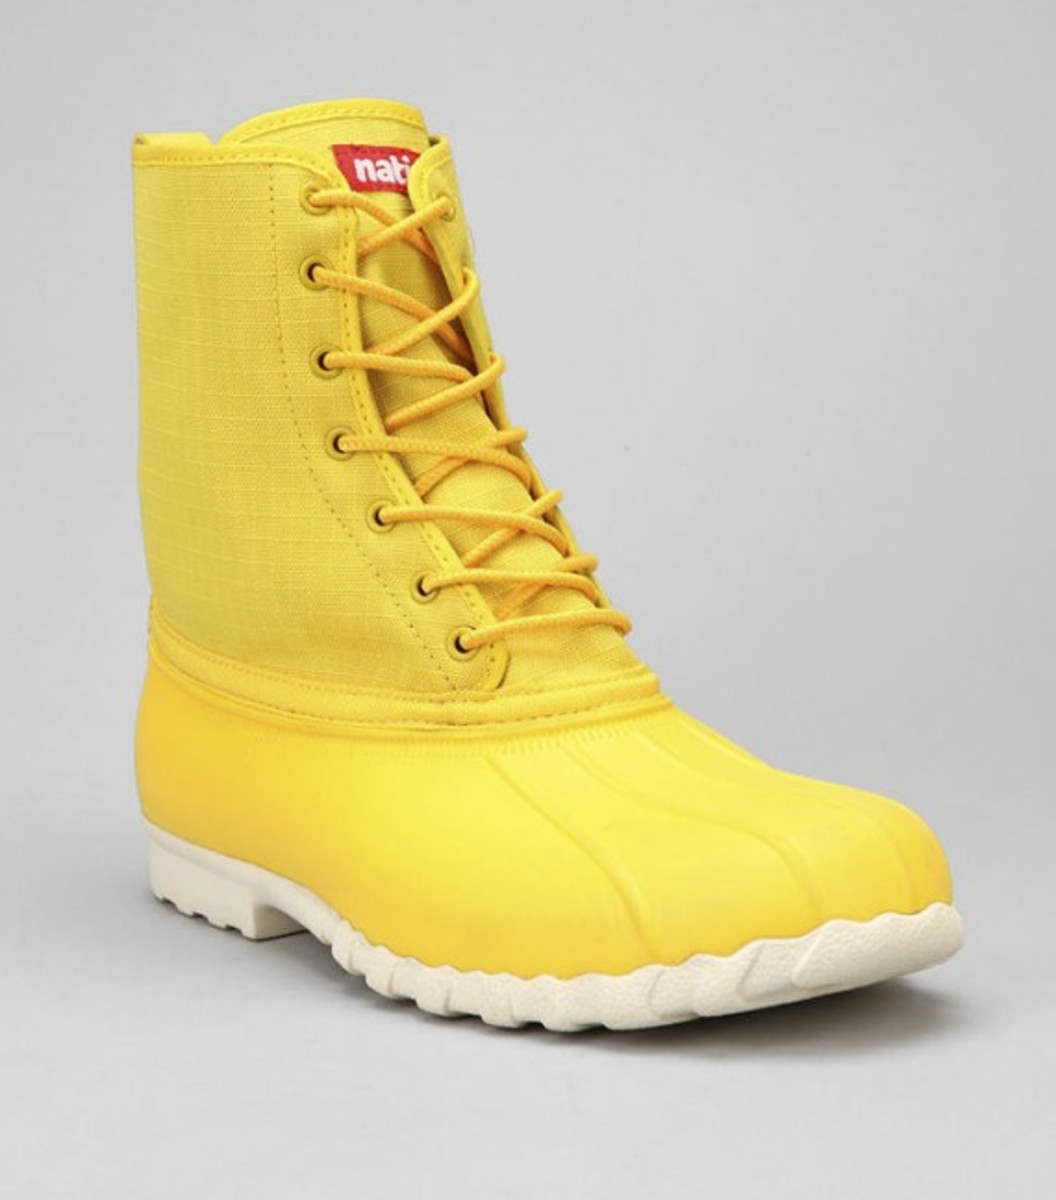 native-jimmy-duck-boots-yellow-02